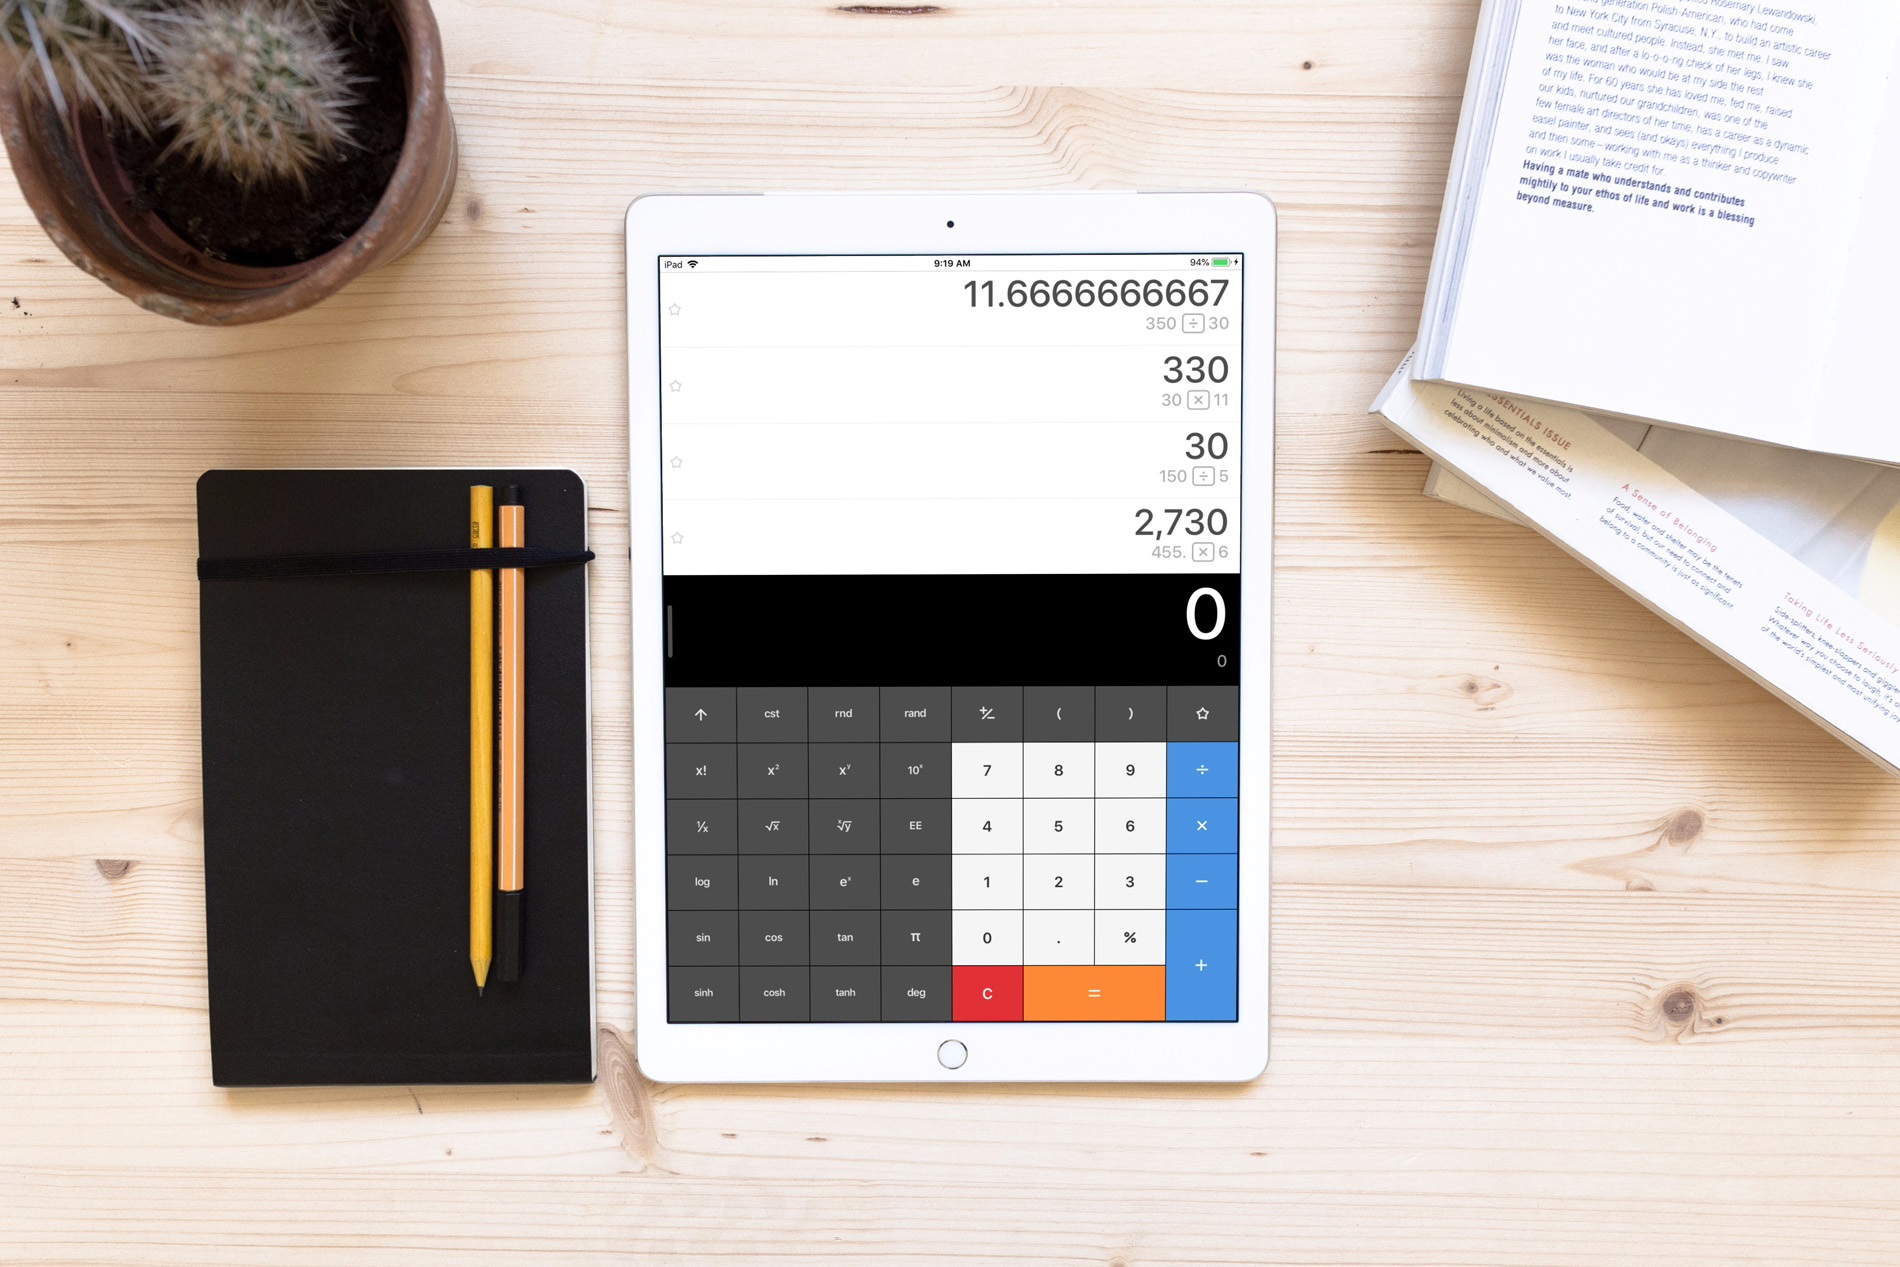 best calculator apps for ipad - Calculator App on iPad Desk